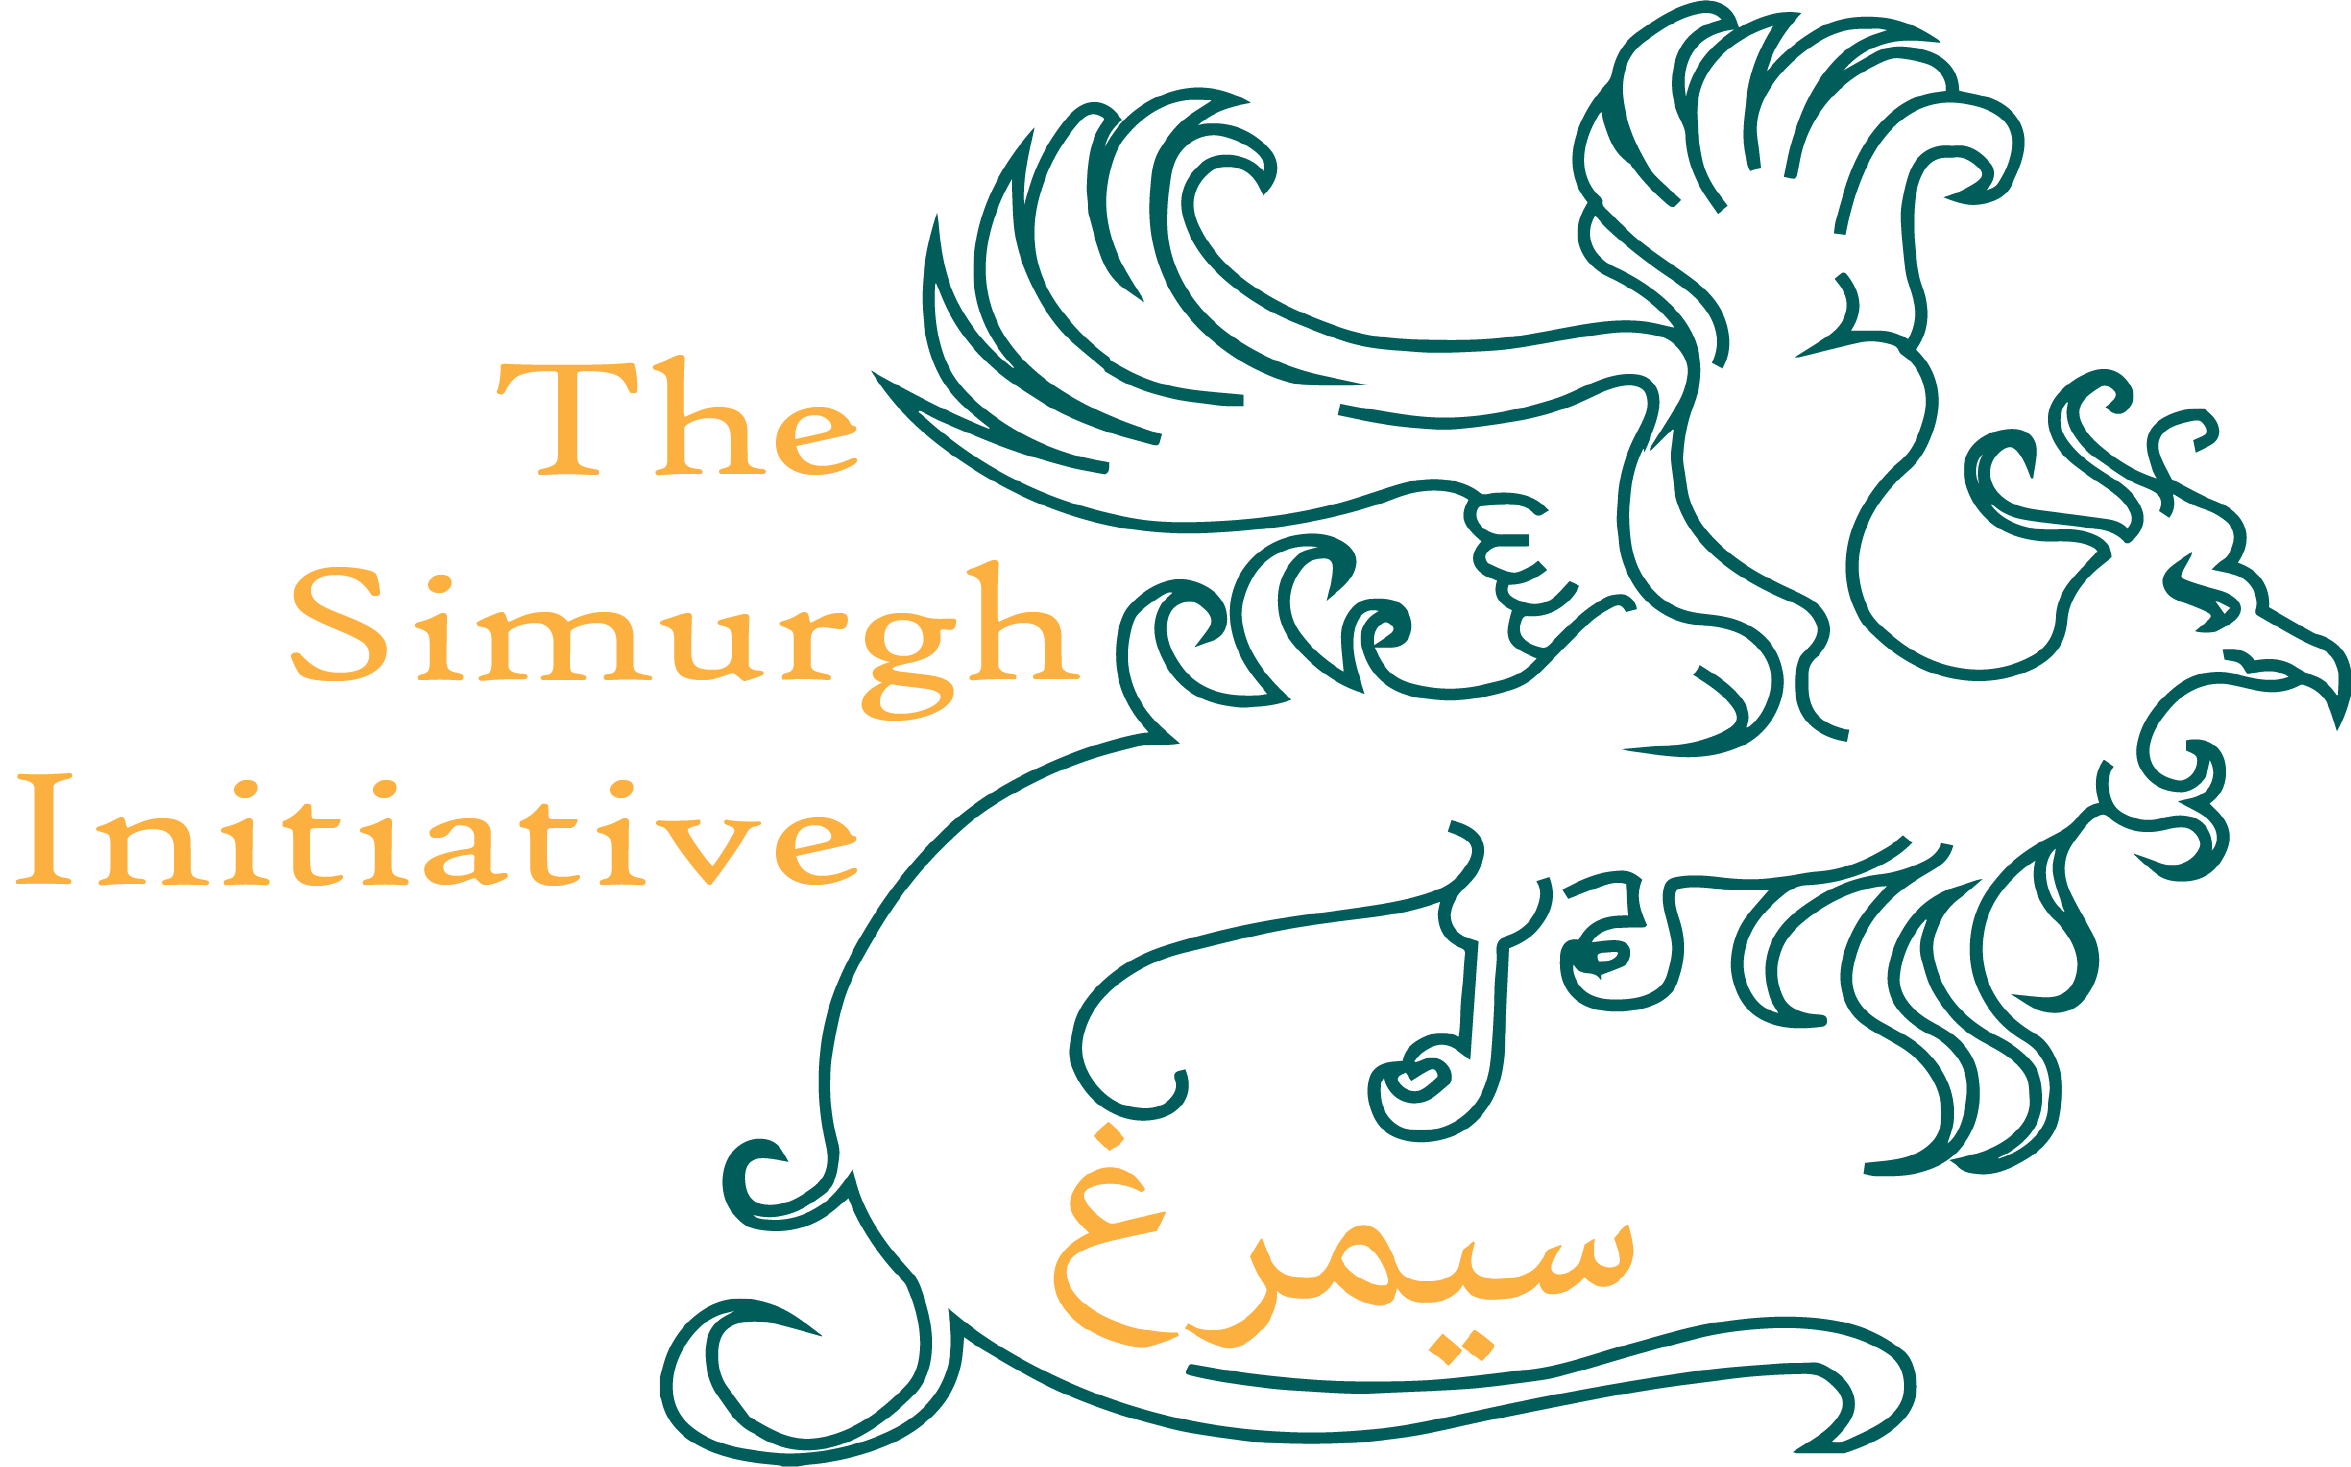 The Simurgh Initiative